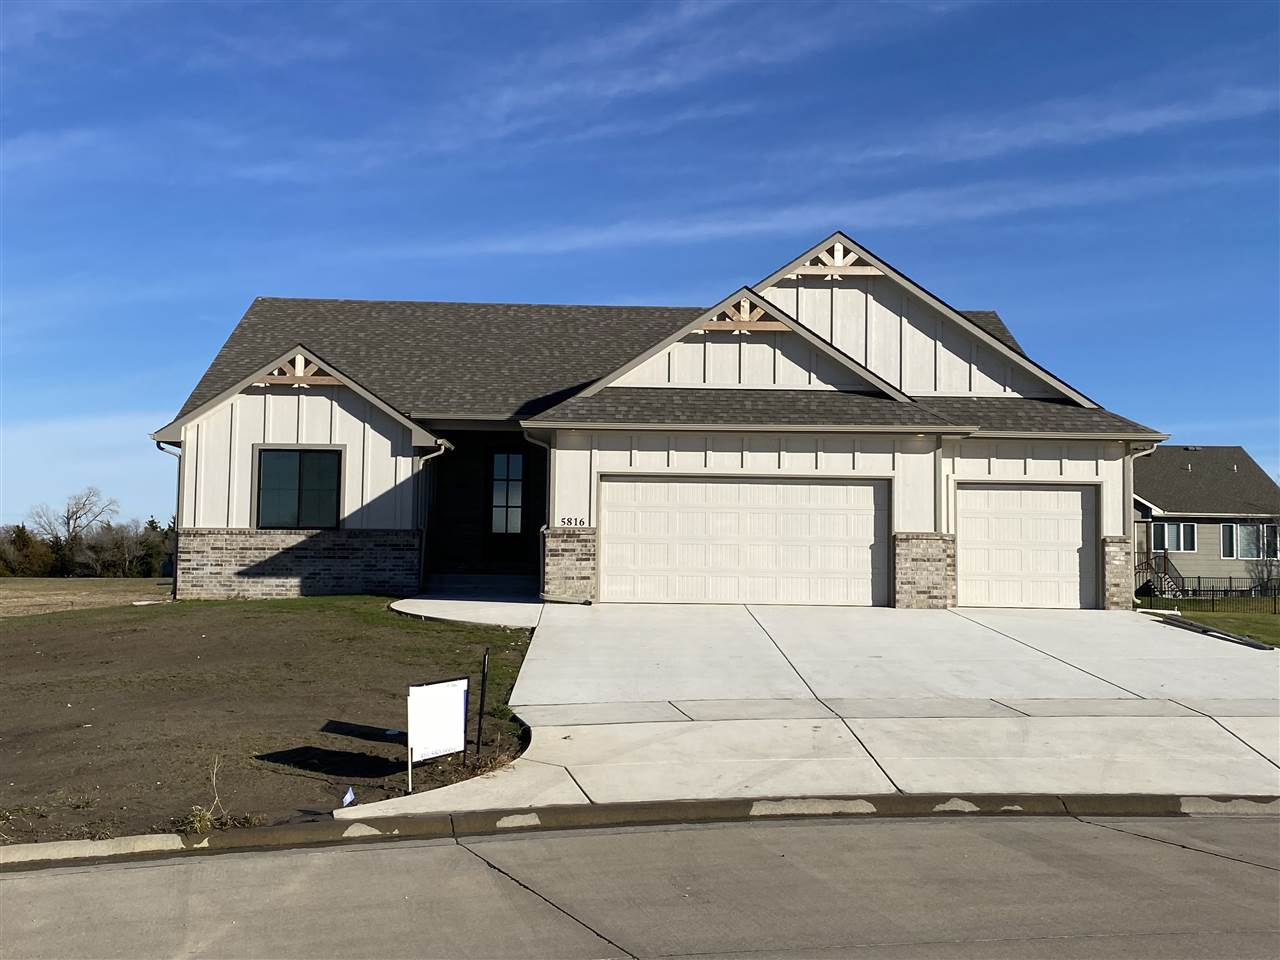 Come check out one of the newest additions to the Iron Gate community! This 5 bedroom, 3 full bath h